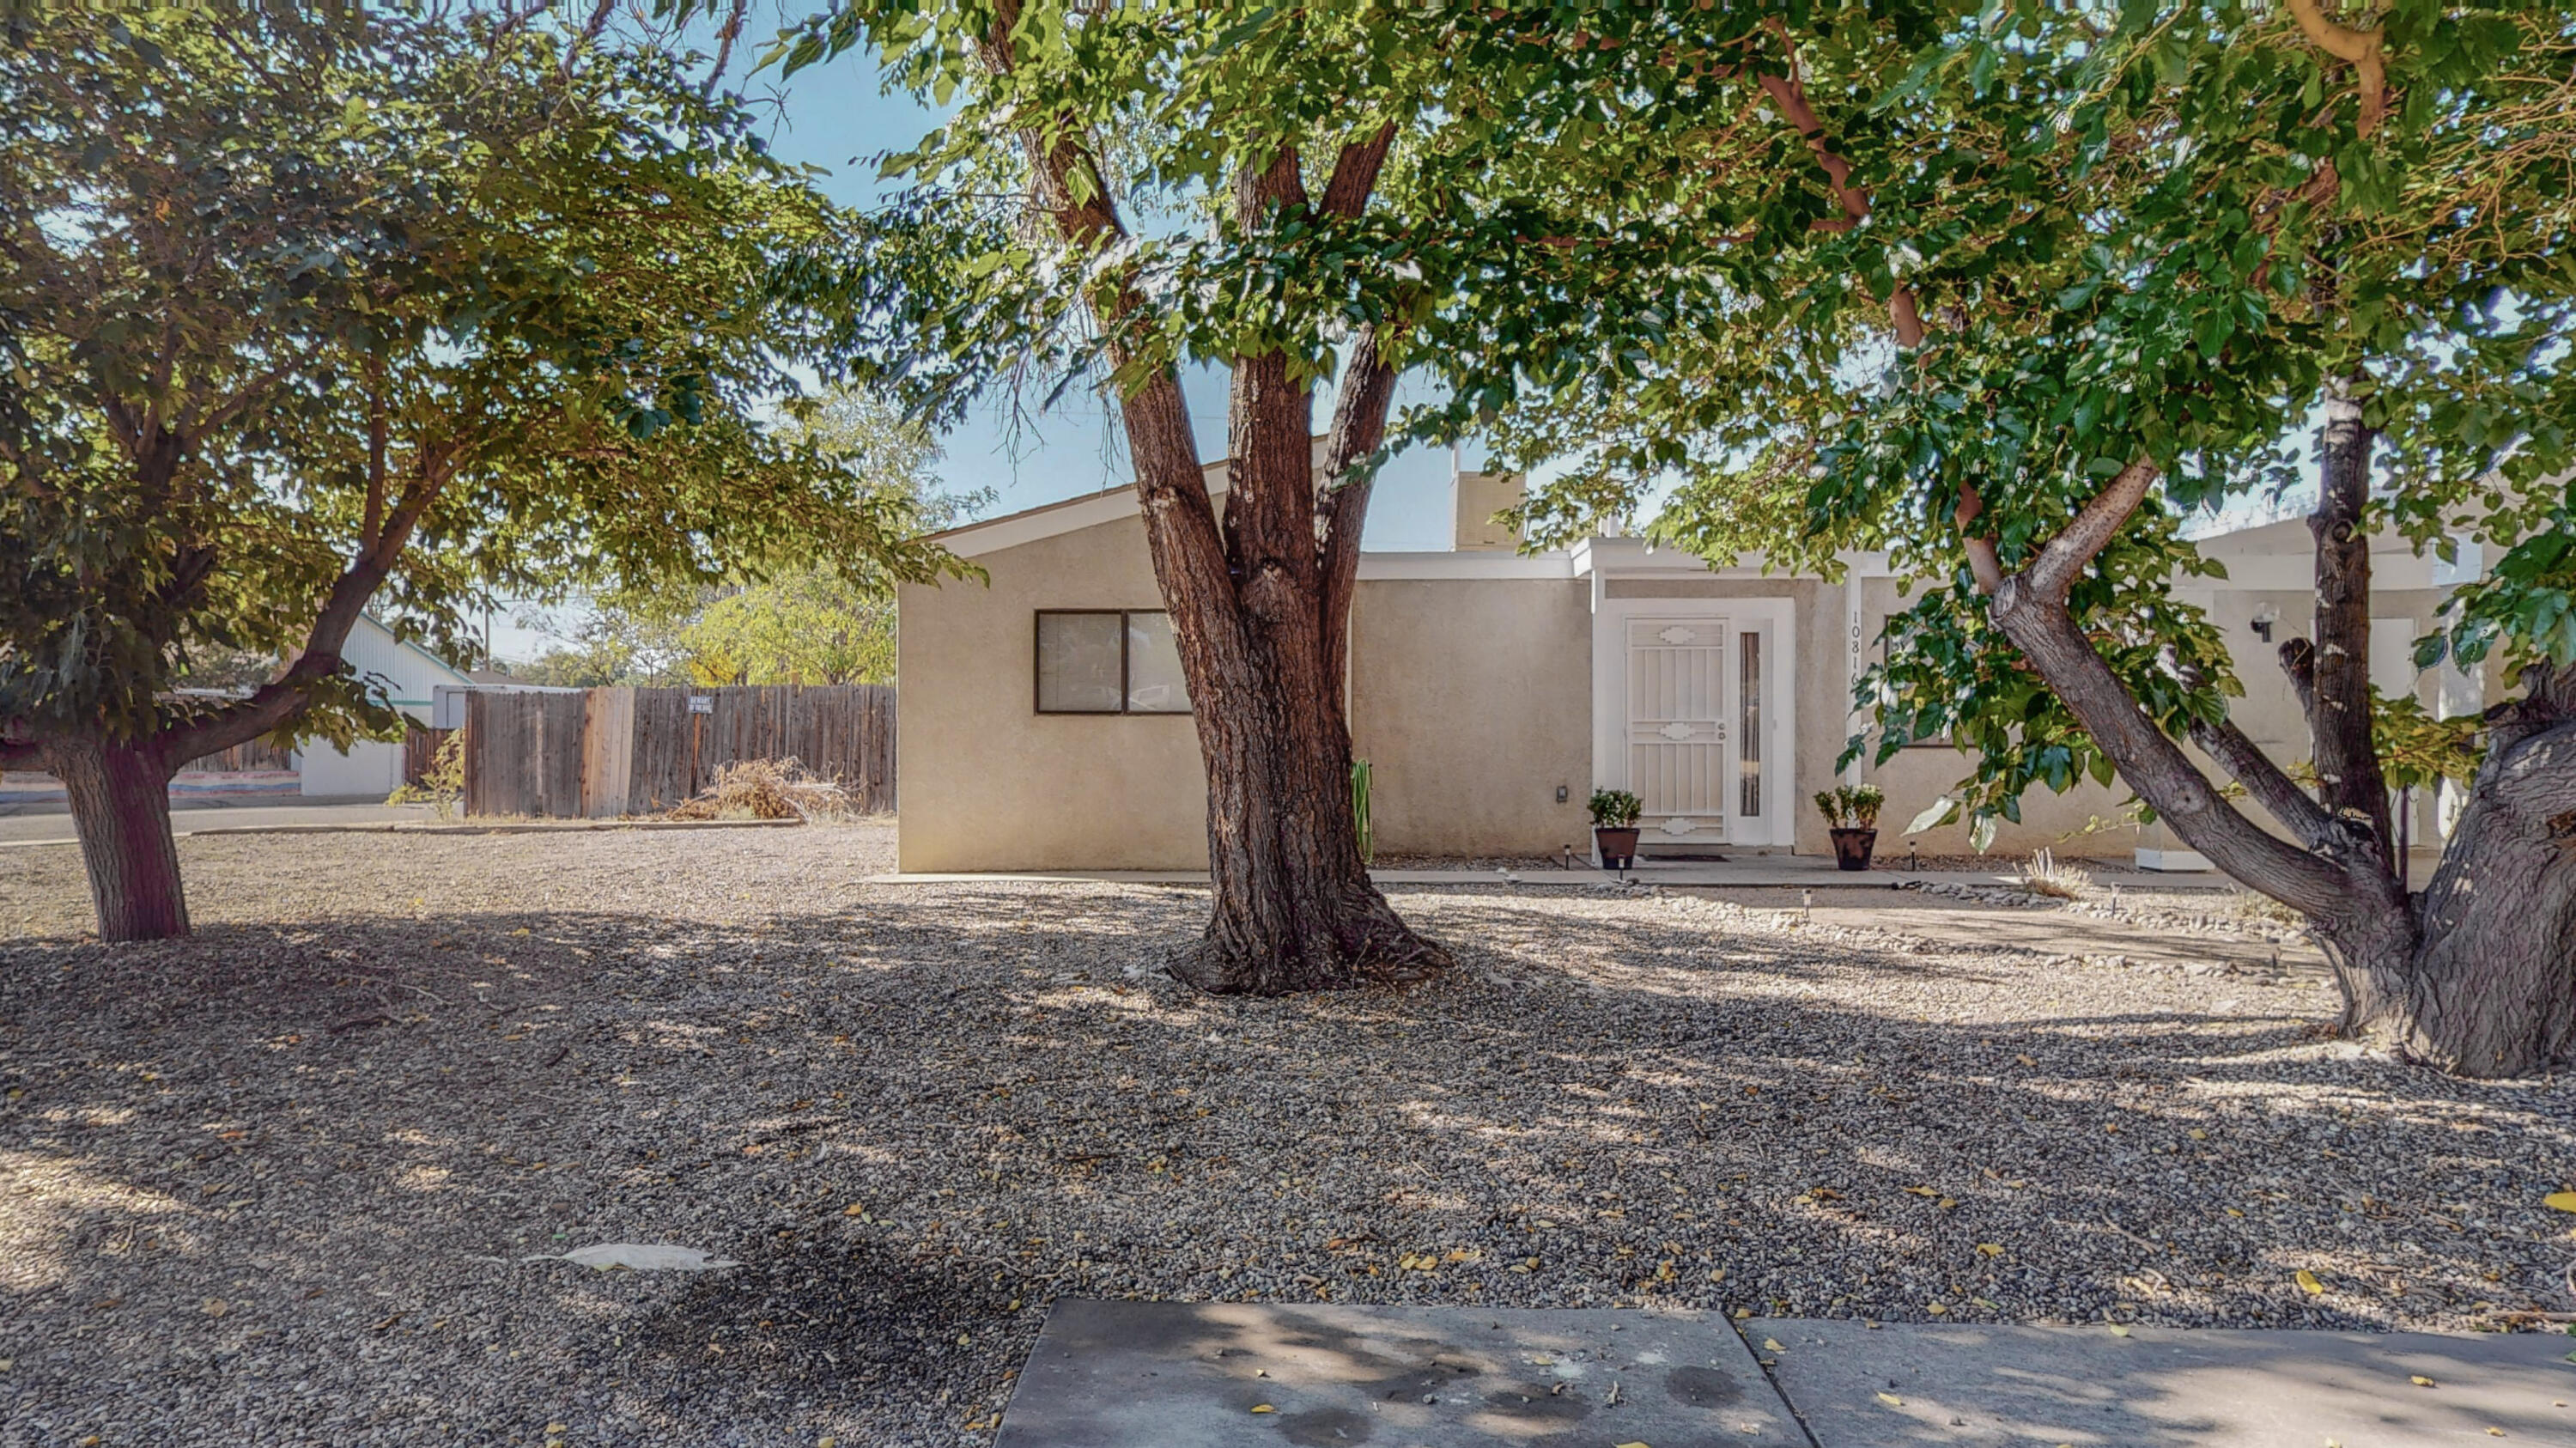 This is a great 2 bedroom, 1 full bath home located on the eastside of Albuquerque. The home features a xero scapped yard front and back and is on an approximate .25 acres. The home has just had a new roof and close access to grocery and several types of businesses.